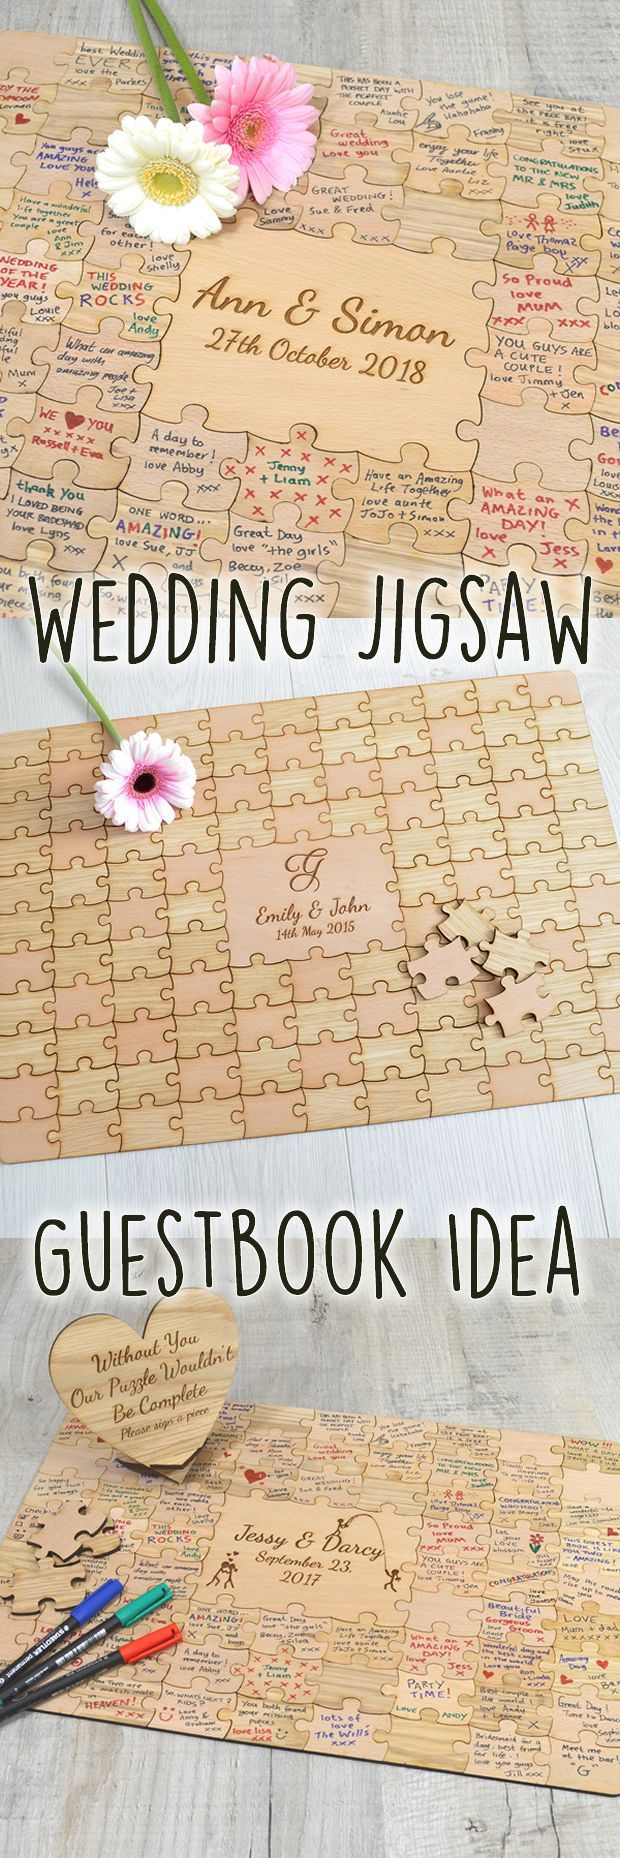 Wedding decorations names october 2018 Introducing our beautiful wedding jigsaw puzzle piece guest book